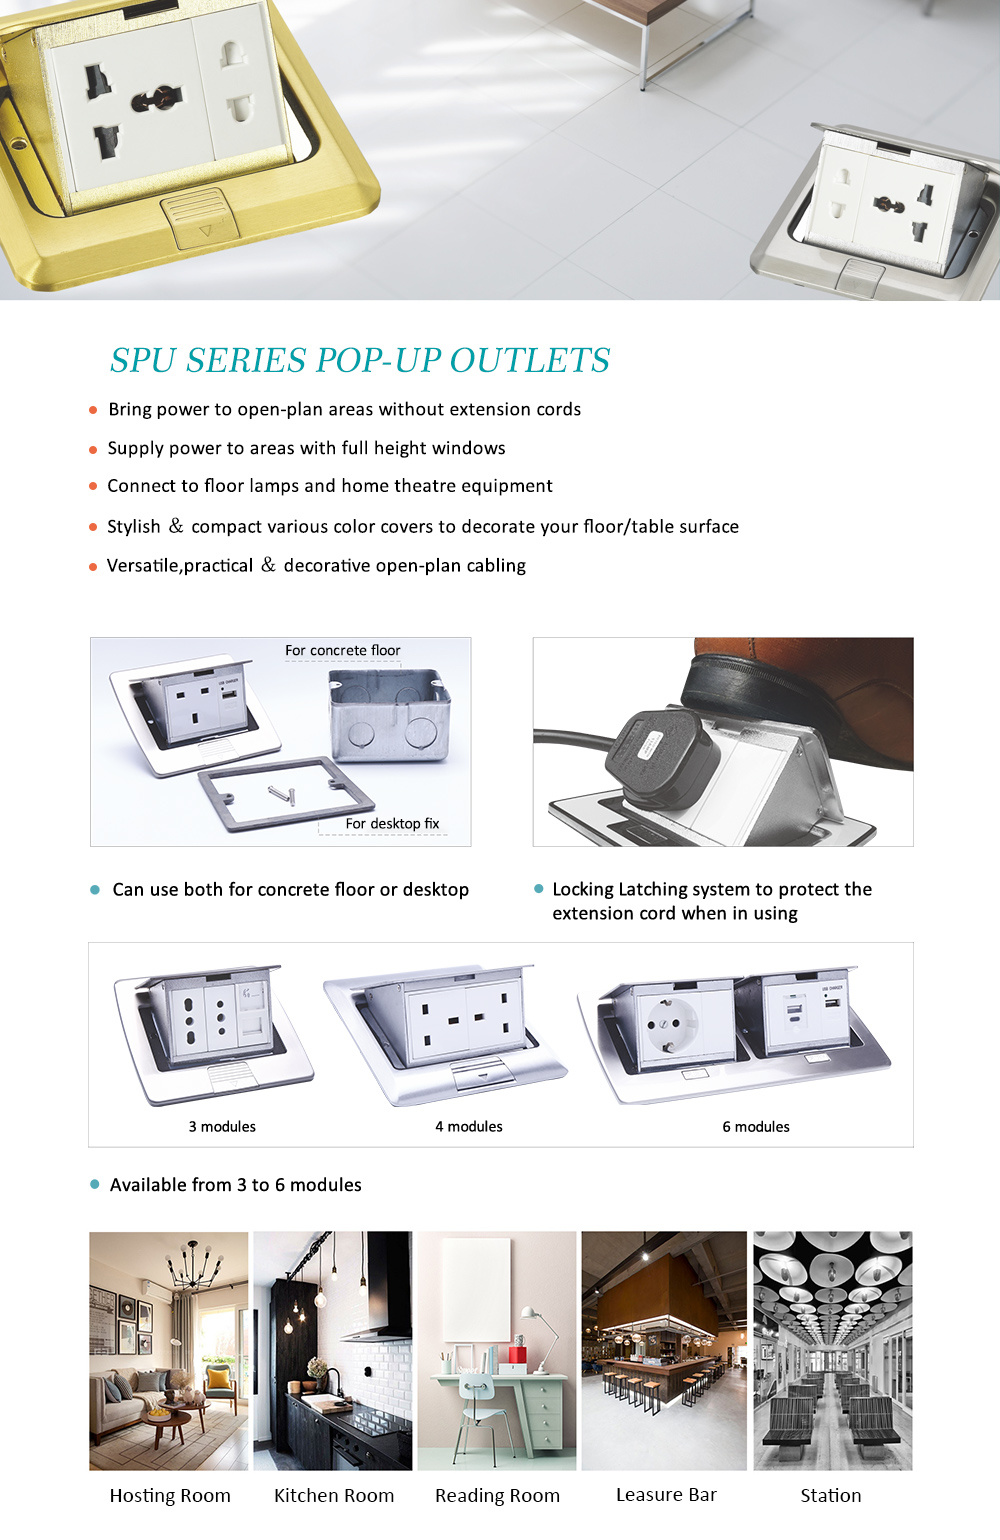 Stainless Steel Cbd Low Voltage Wiring System Electrical Floor Socket Junction Box Optional Base Boxes Brass Alloy Aluminum 4 Modules Type 4543 Available